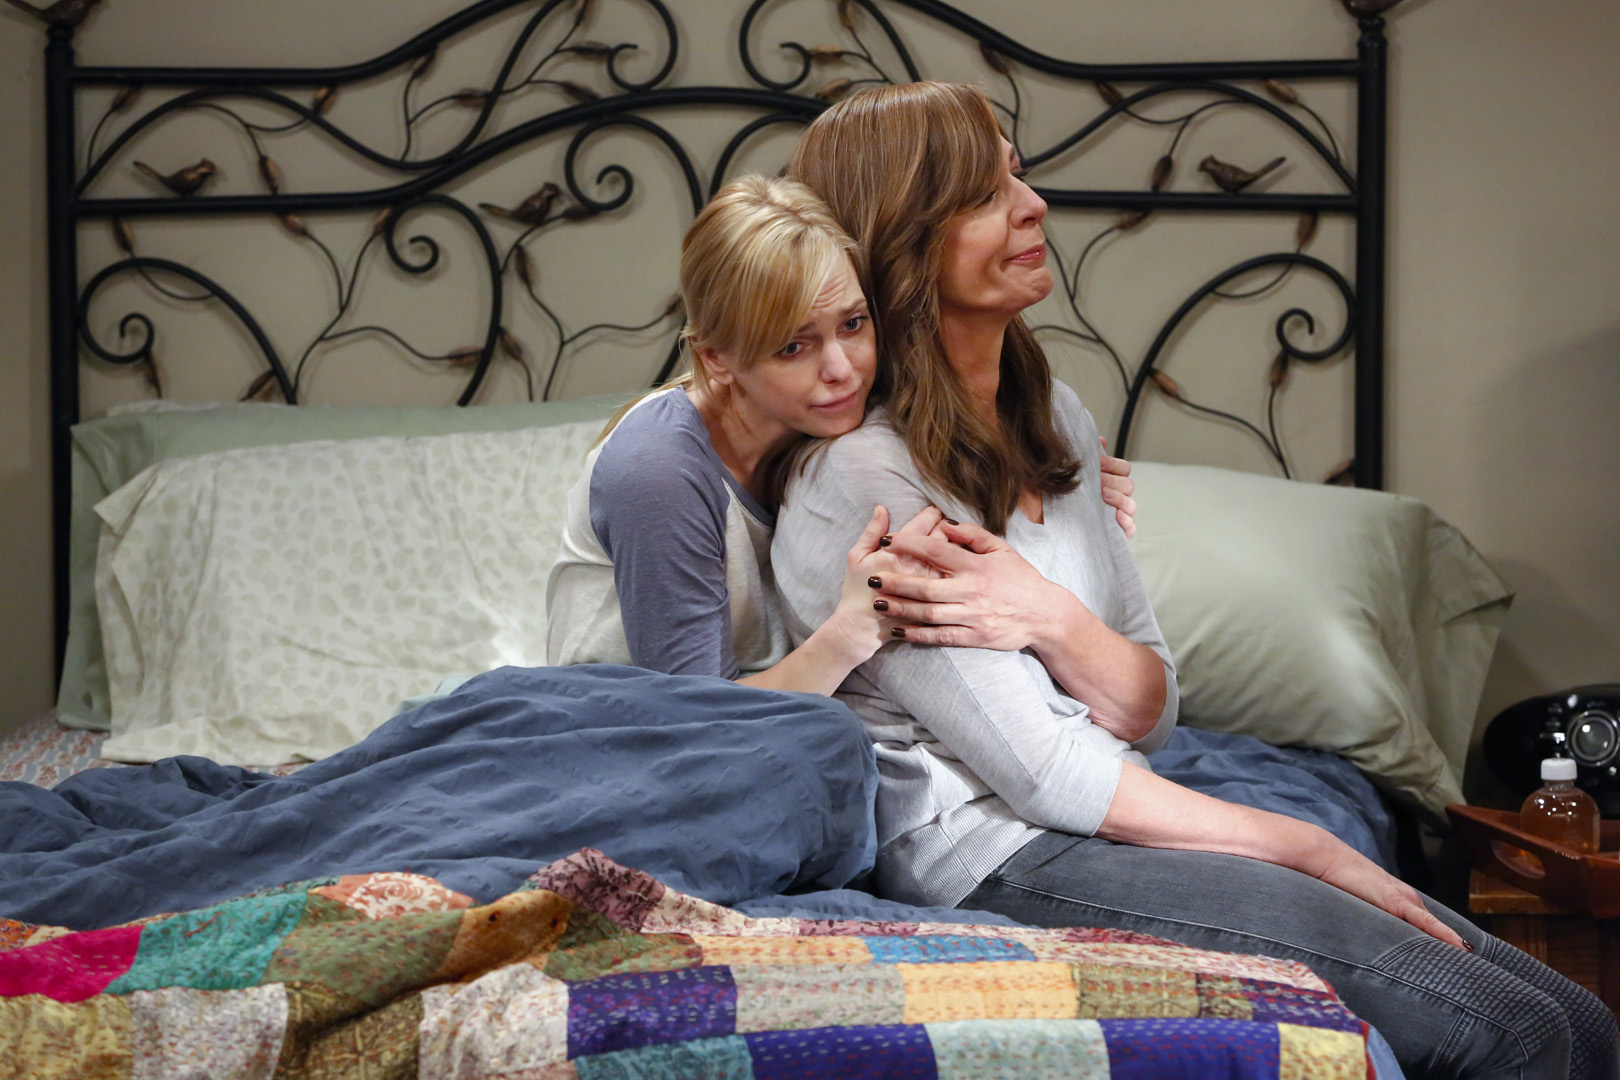 Christy consoles Bonnie after Adam delivers some disappointing news.